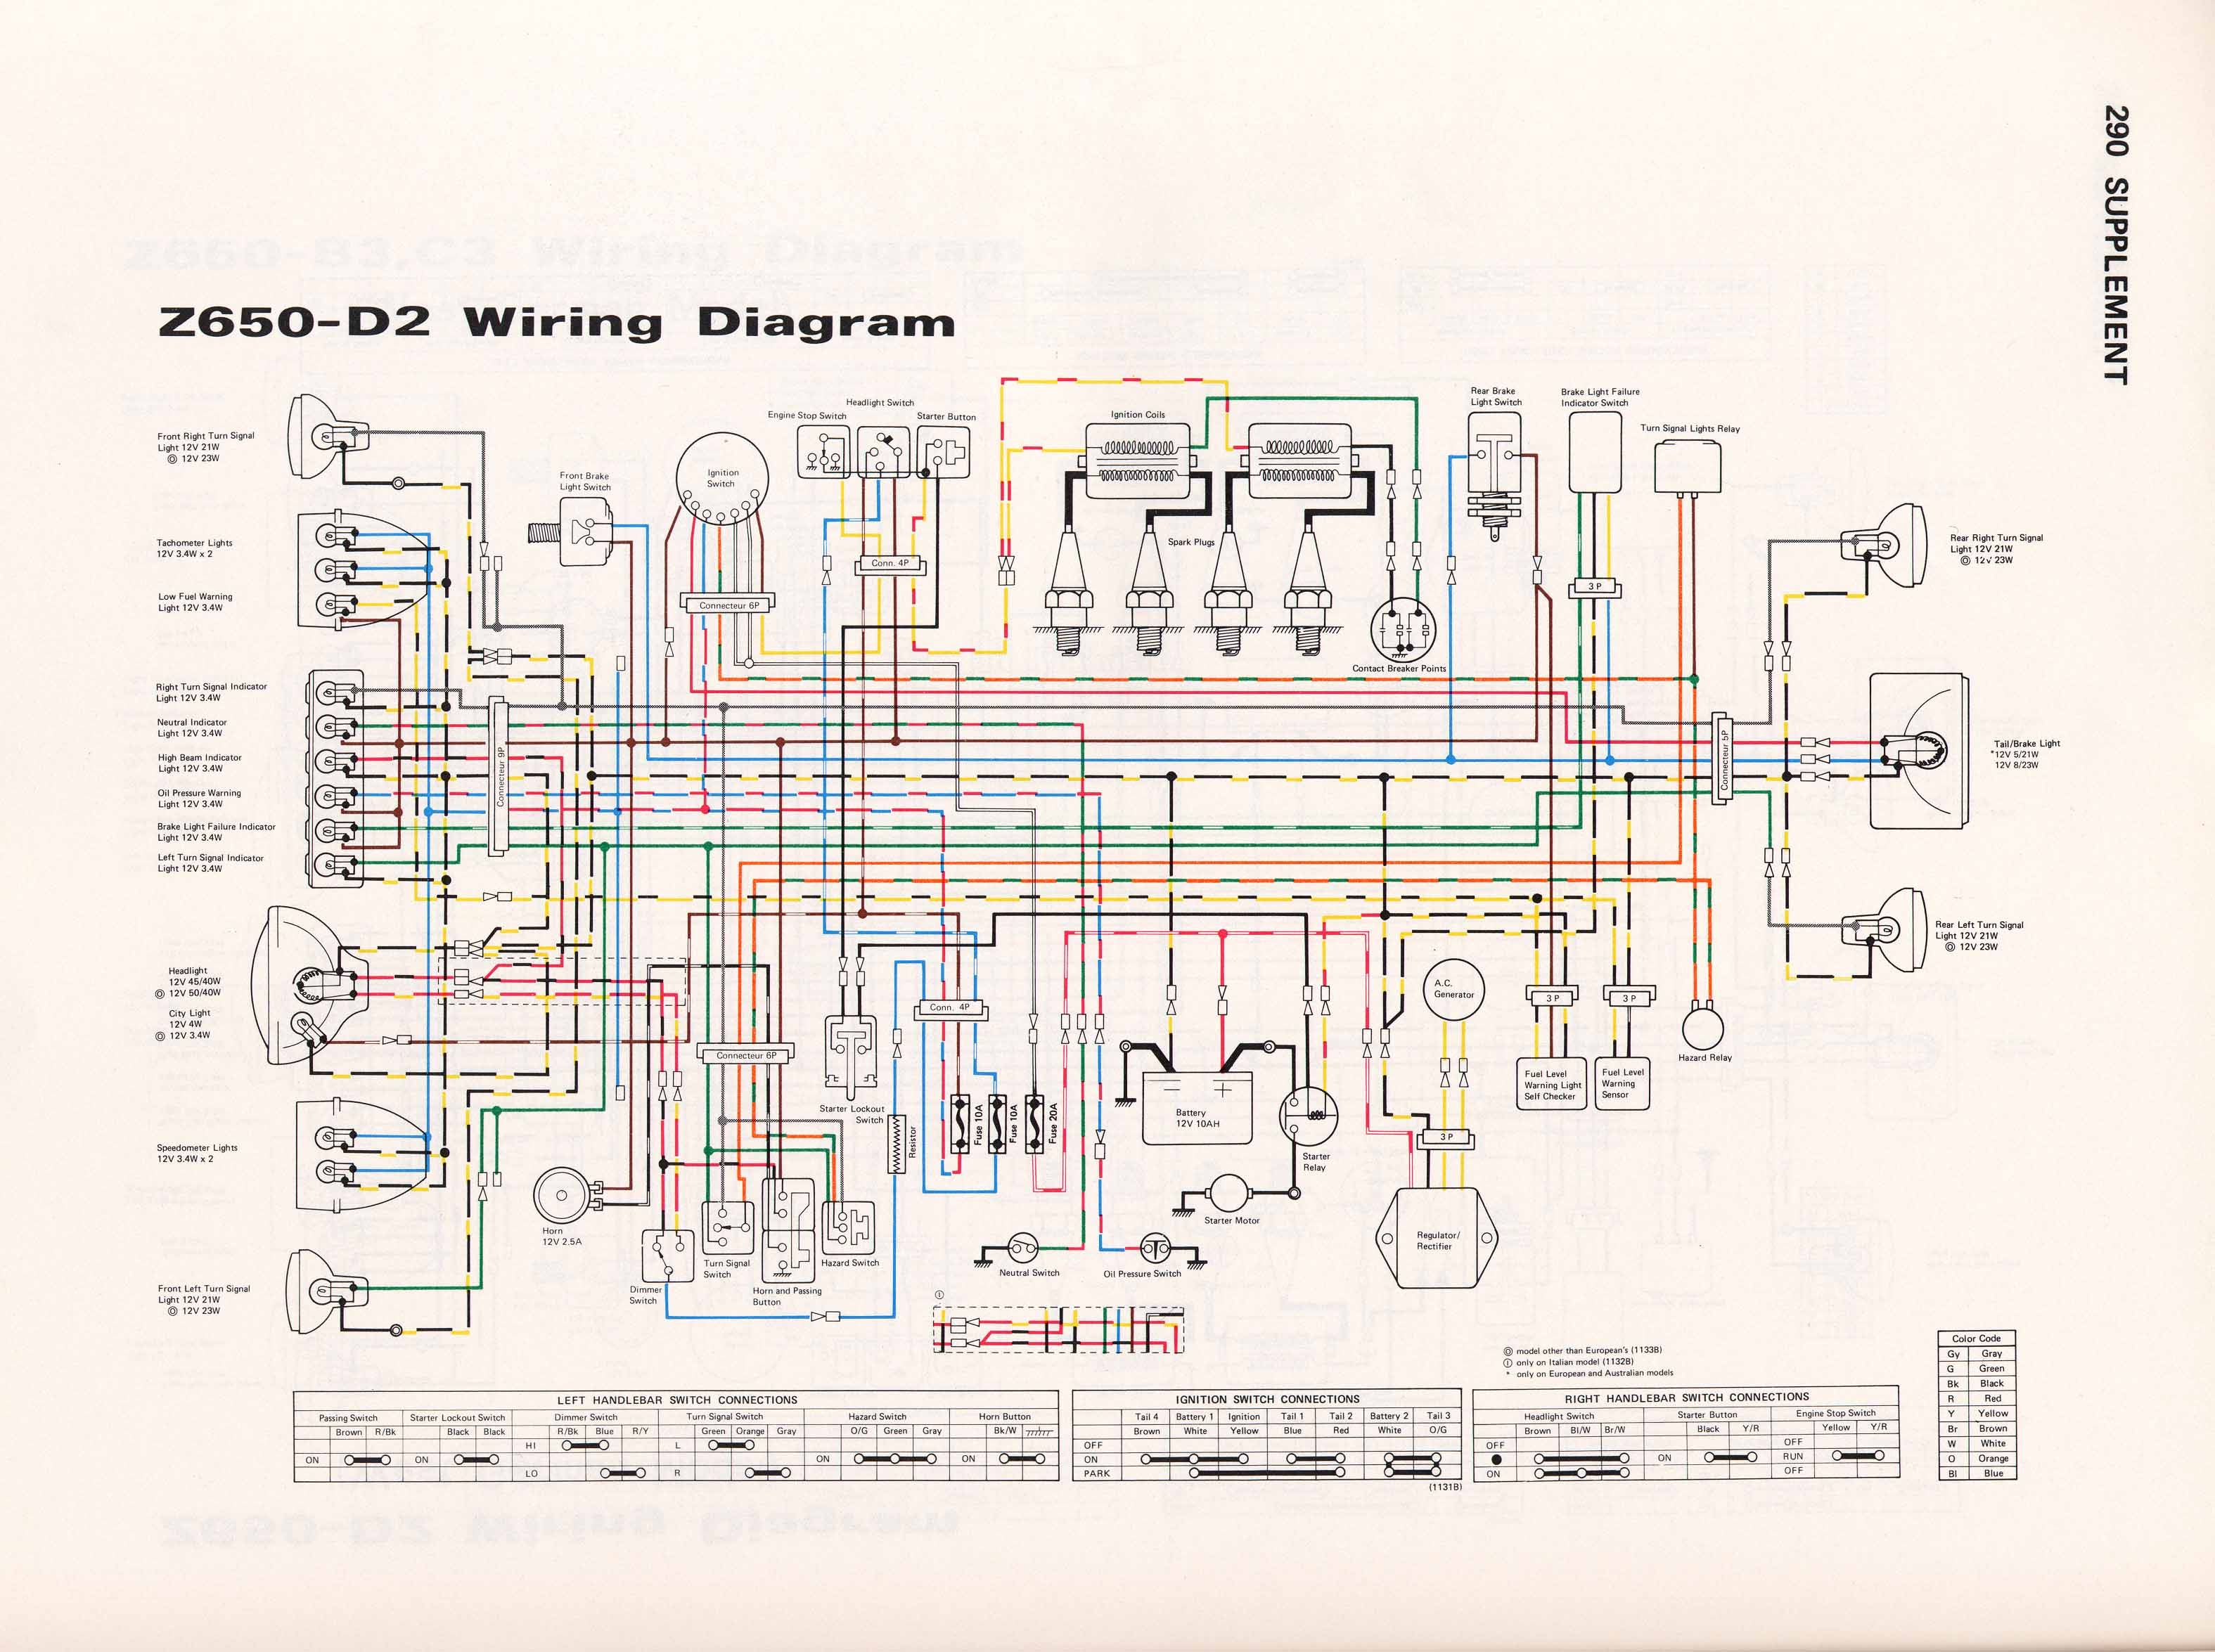 Kawasaki Zrx Wiring Diagram Free Picture Schematic Mule Kz650 Info Diagrams Rh 2005 Ignition